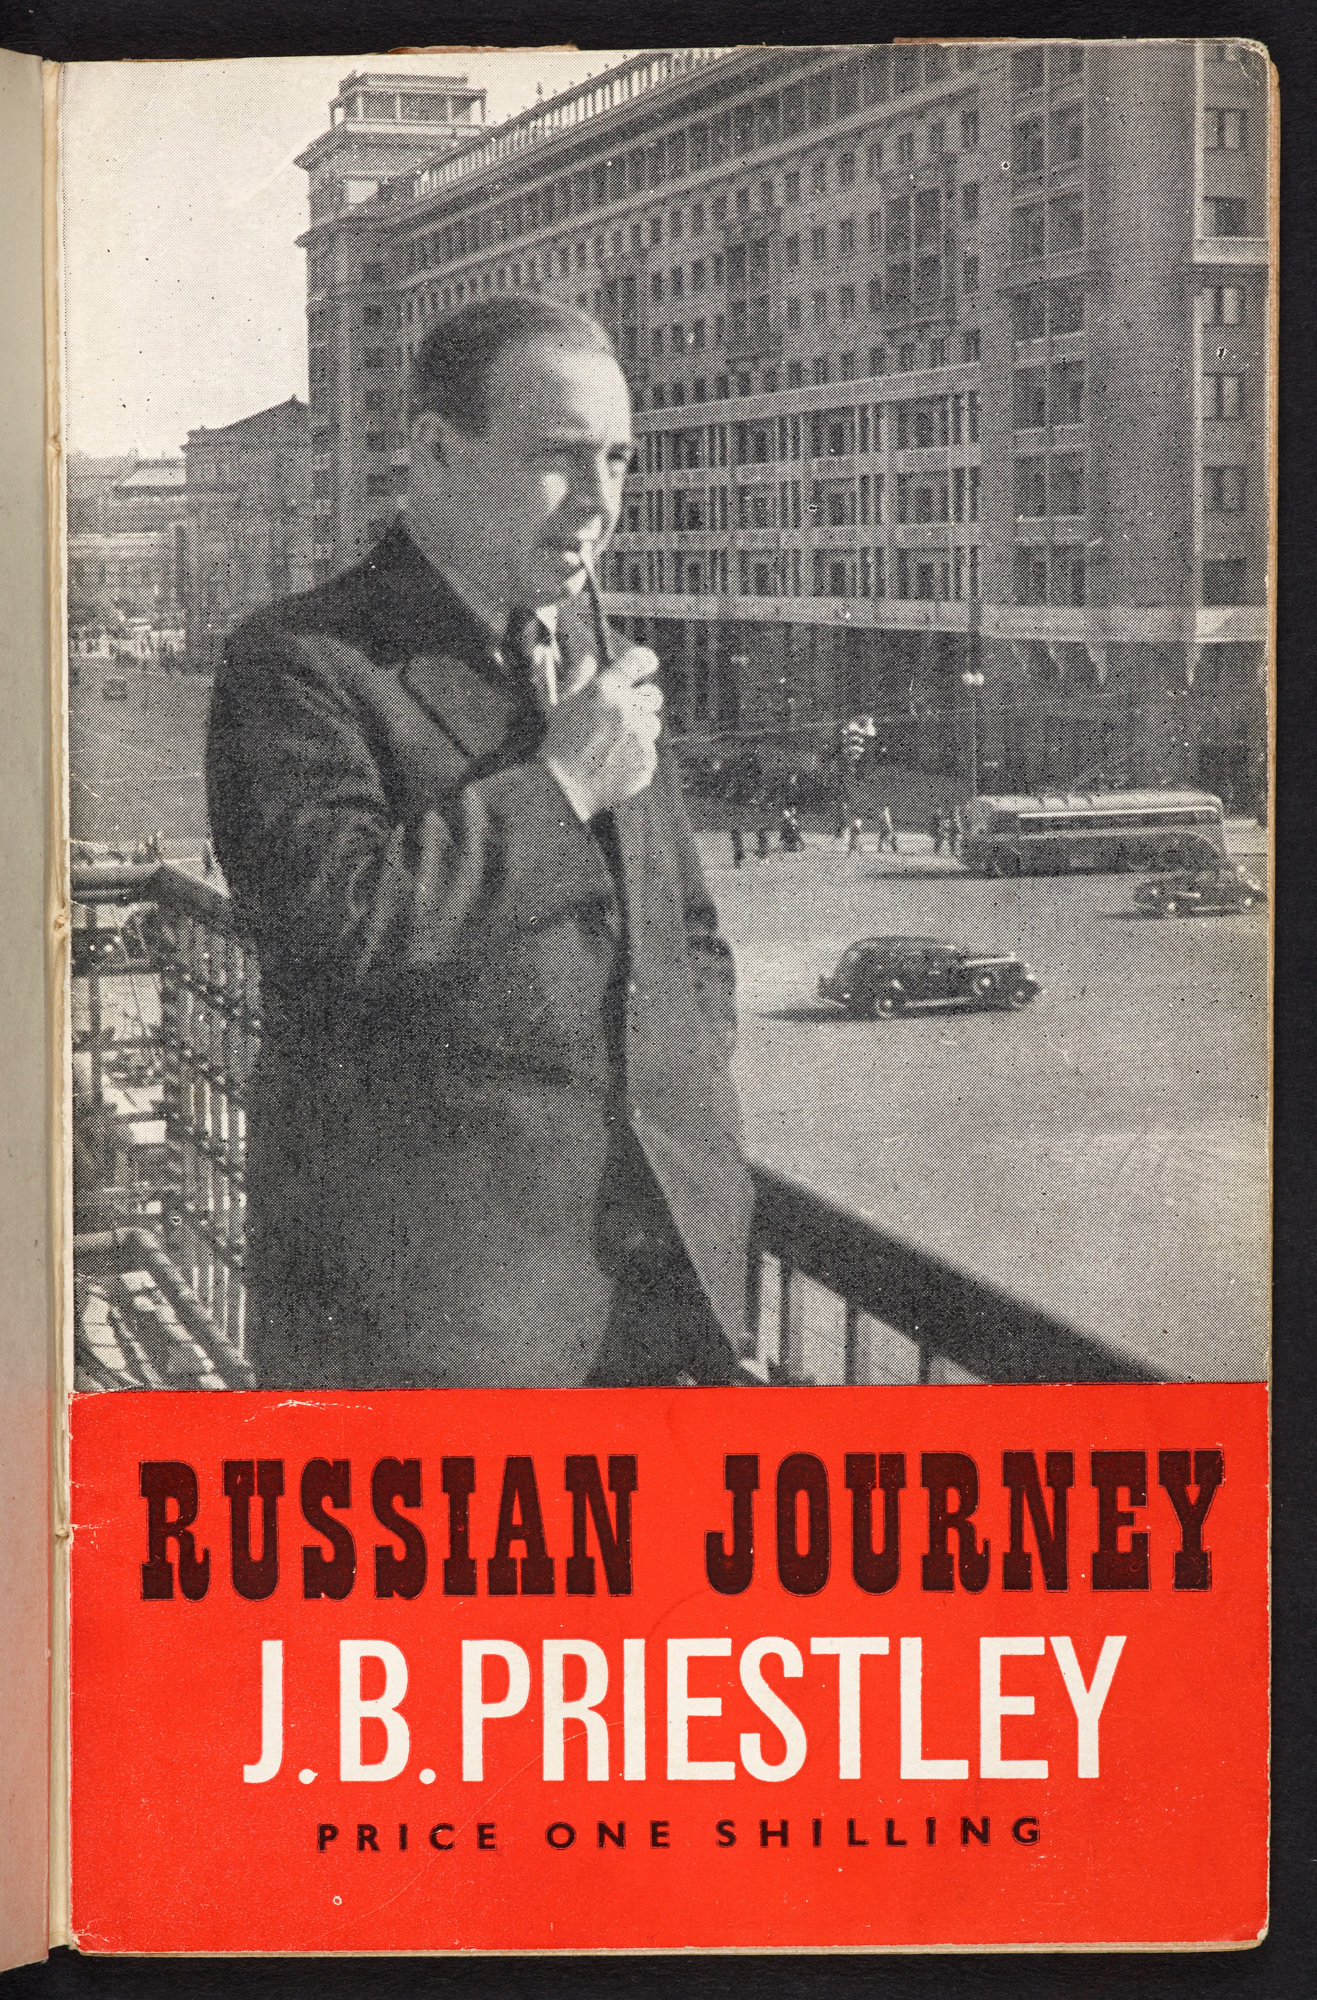 Russian Journey by J B Priestley, 1946